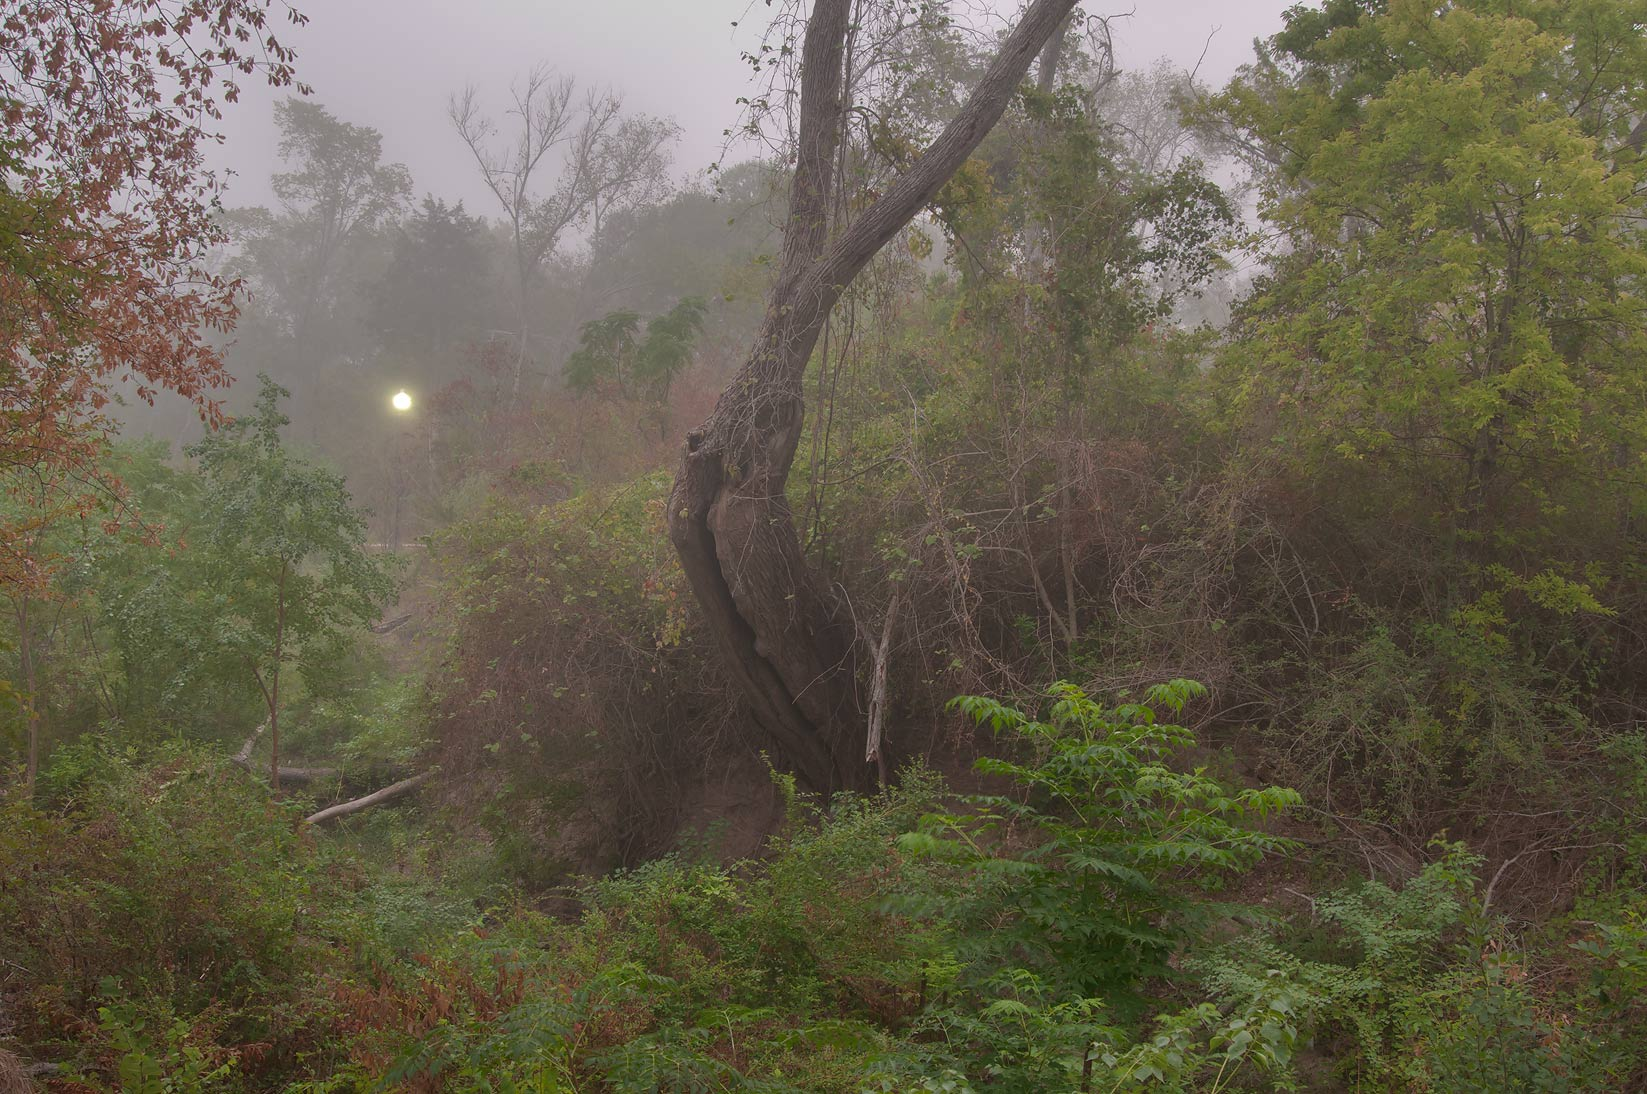 Canyon of Wolf Pen Creek Park in fog. College Station, Texas